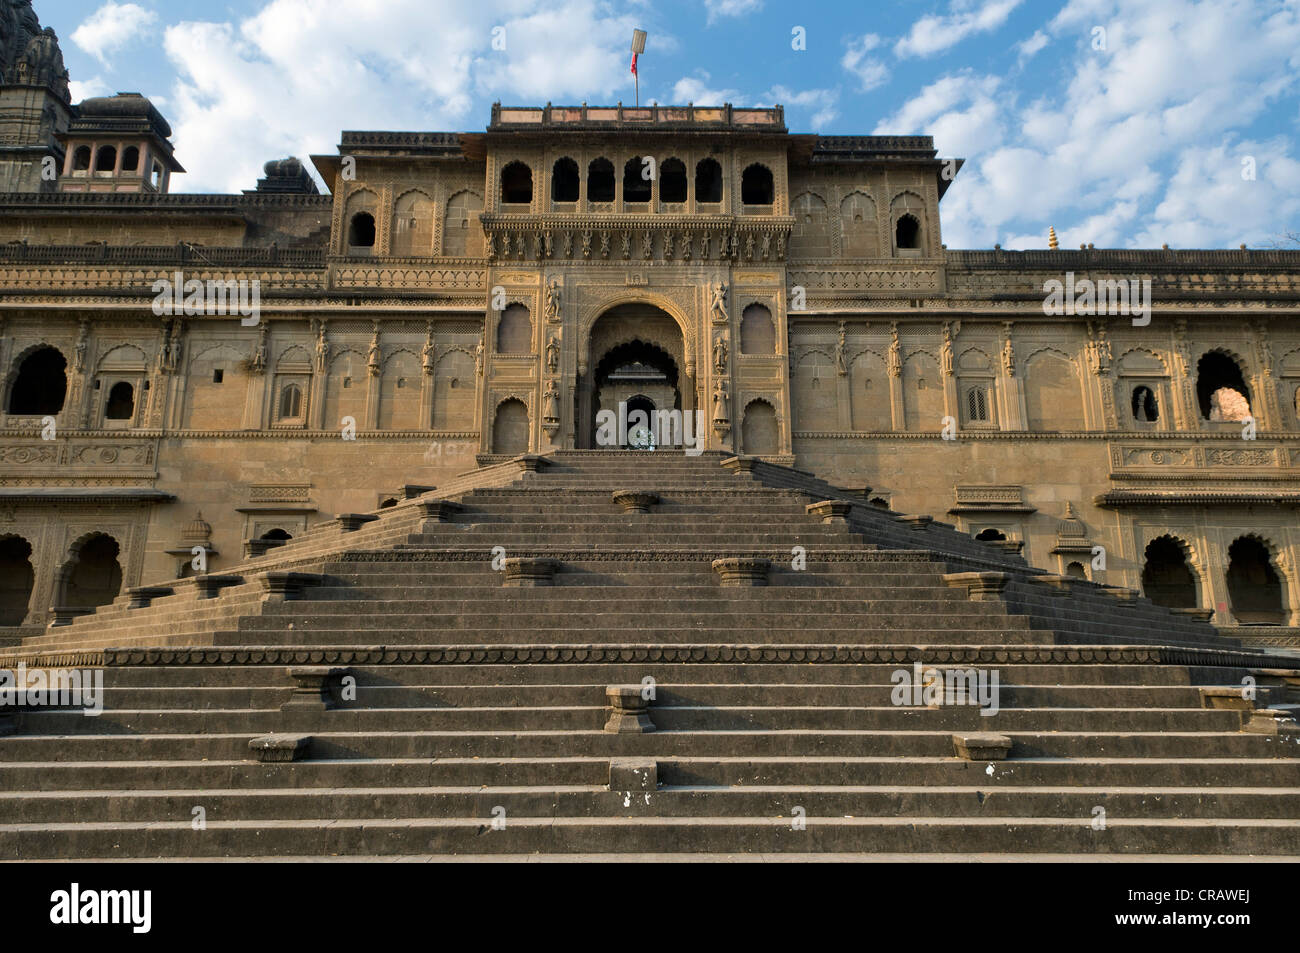 Flight of stairs leading to the entrance of the Ahilya Fort, Maheshwar, Madhya Pradesh, India, Asia - Stock Image